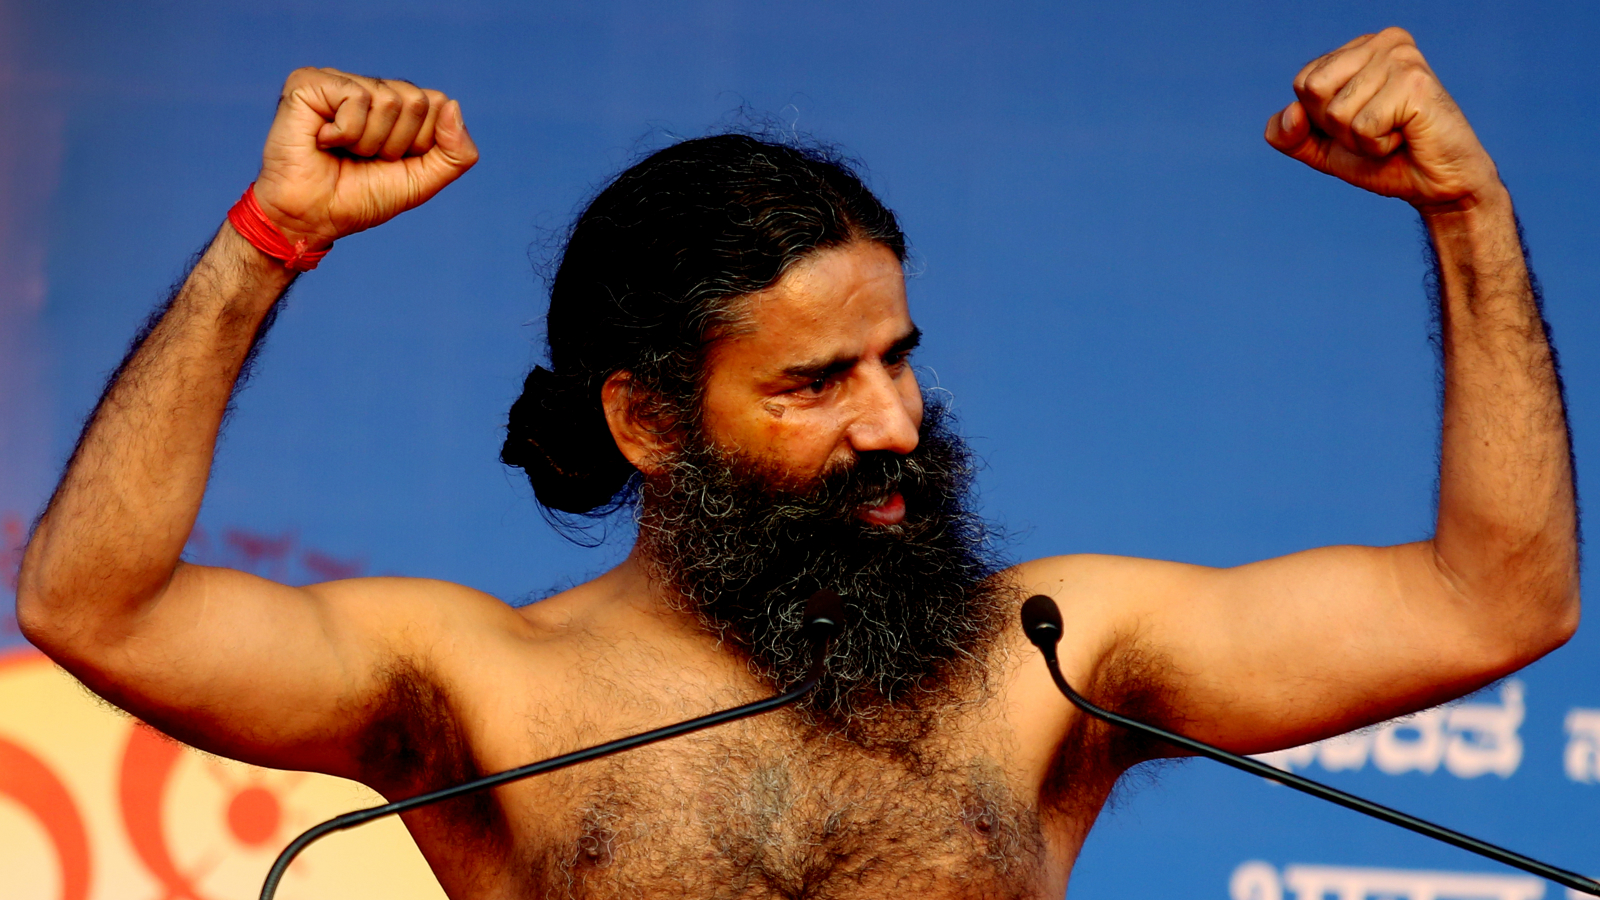 Indian Yoga guru Baba Ramdev take part in the free yoga camp for yoga enthusiasts, in Bangalore, India, 19 March 2016. Over hundreds of yoga enthusiast performed sun salutations, Pranayama (breathing exercise) and Asanas (body Postures) in order to raise awareness among the people for Happiness, Harmony and Good Health adds life to years. The camp will run from 19th to 23rd March 2016.